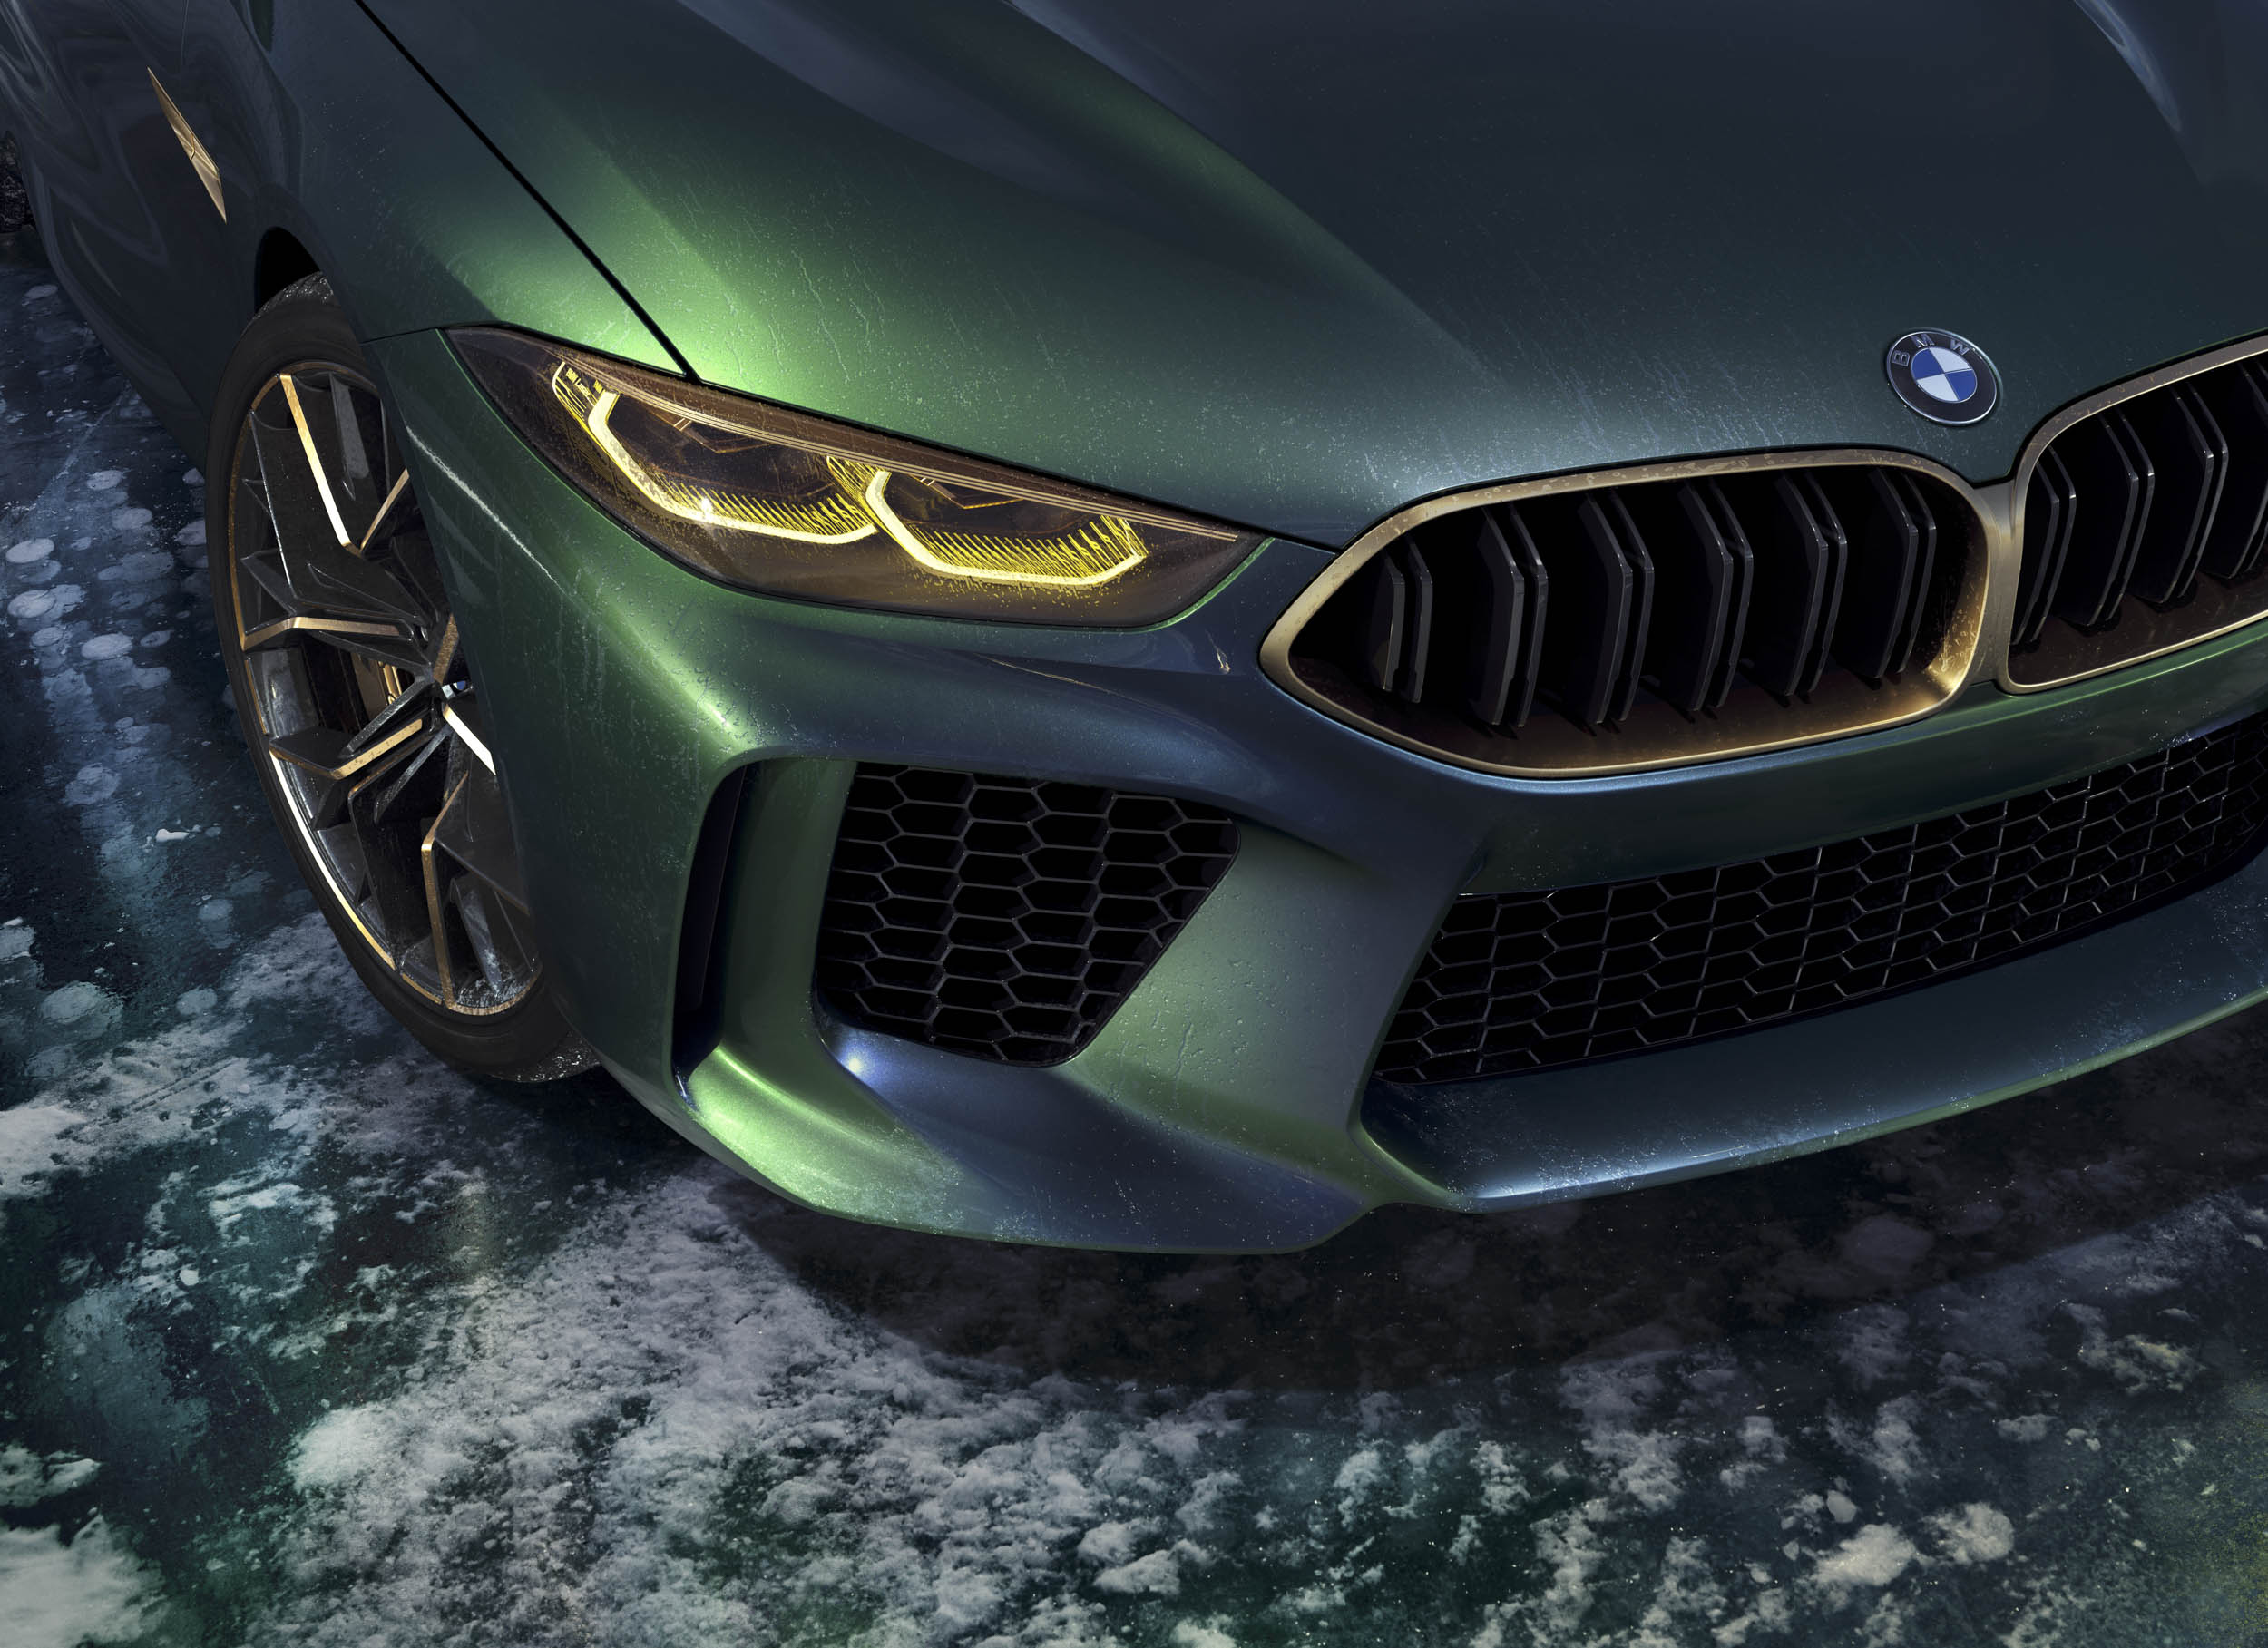 BMW M8 Gran Coupe grille and headlight detail